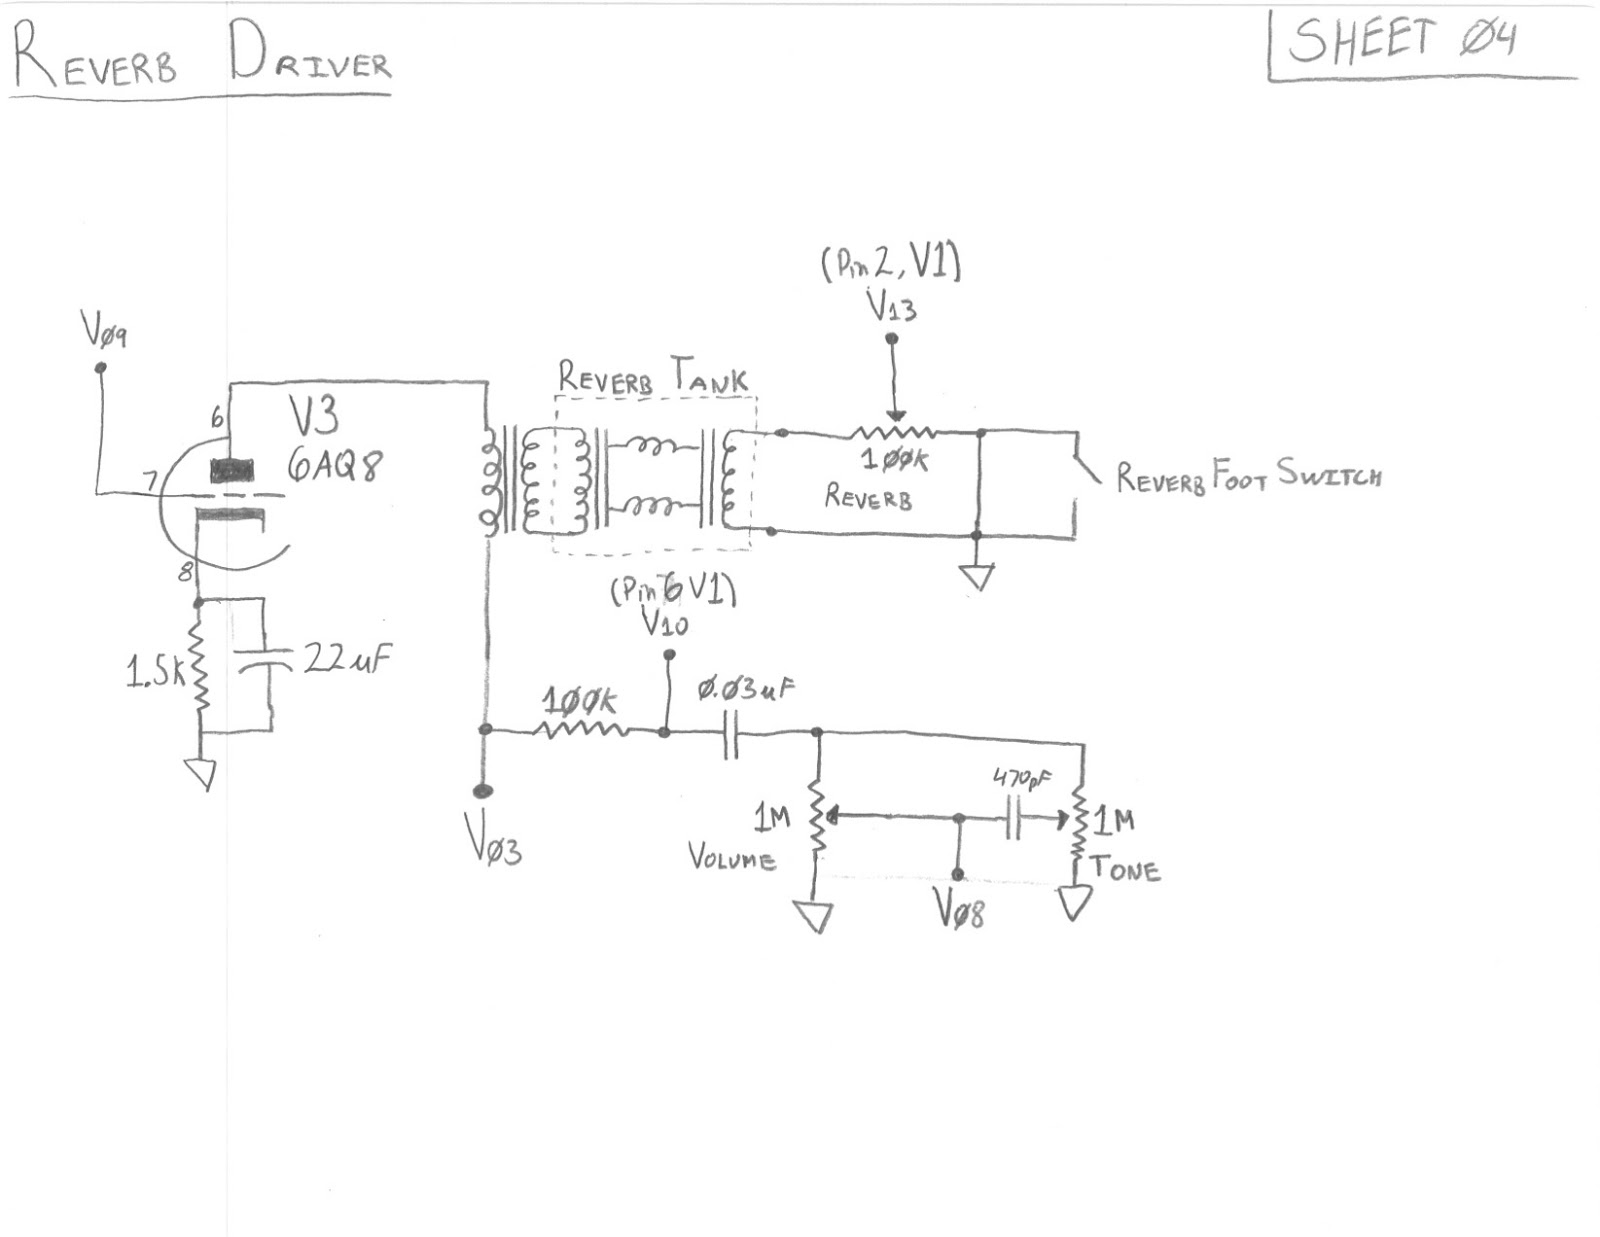 hight resolution of there are no guarantees that this unit or the schematics represent a factory original unit use these drawings as a reference and data point only